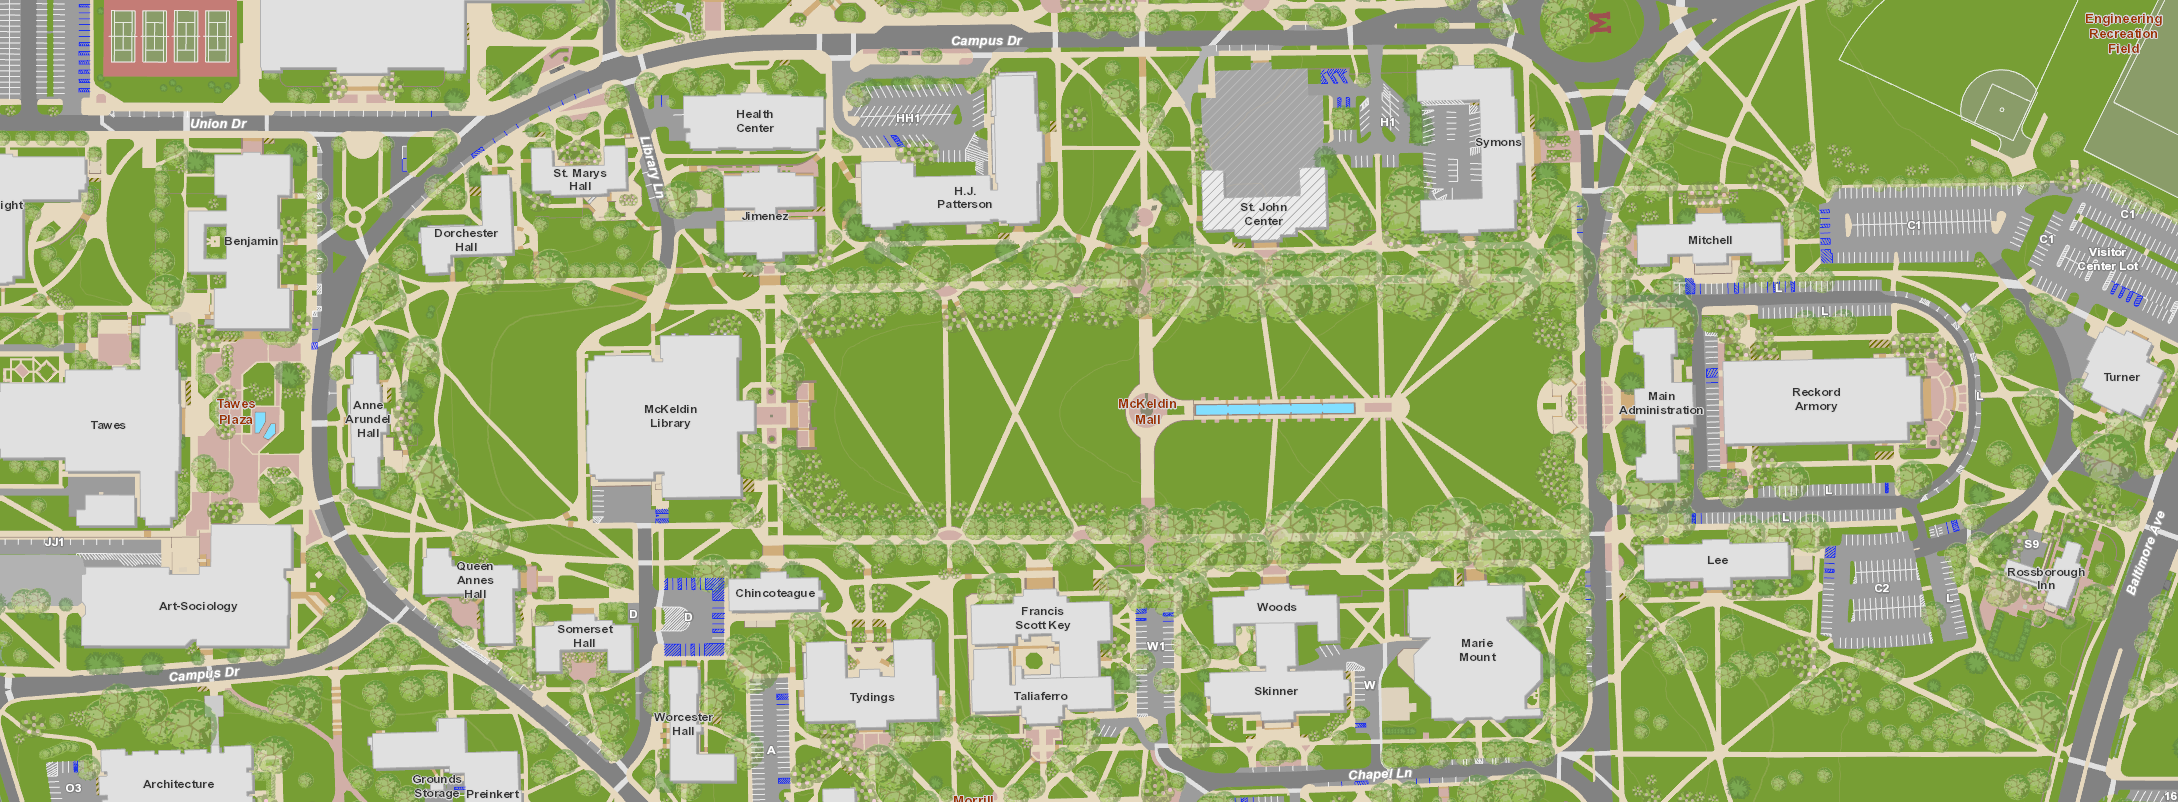 u maryland campus map Custom Map Might Not Be Google Map Campus Map Custom Map